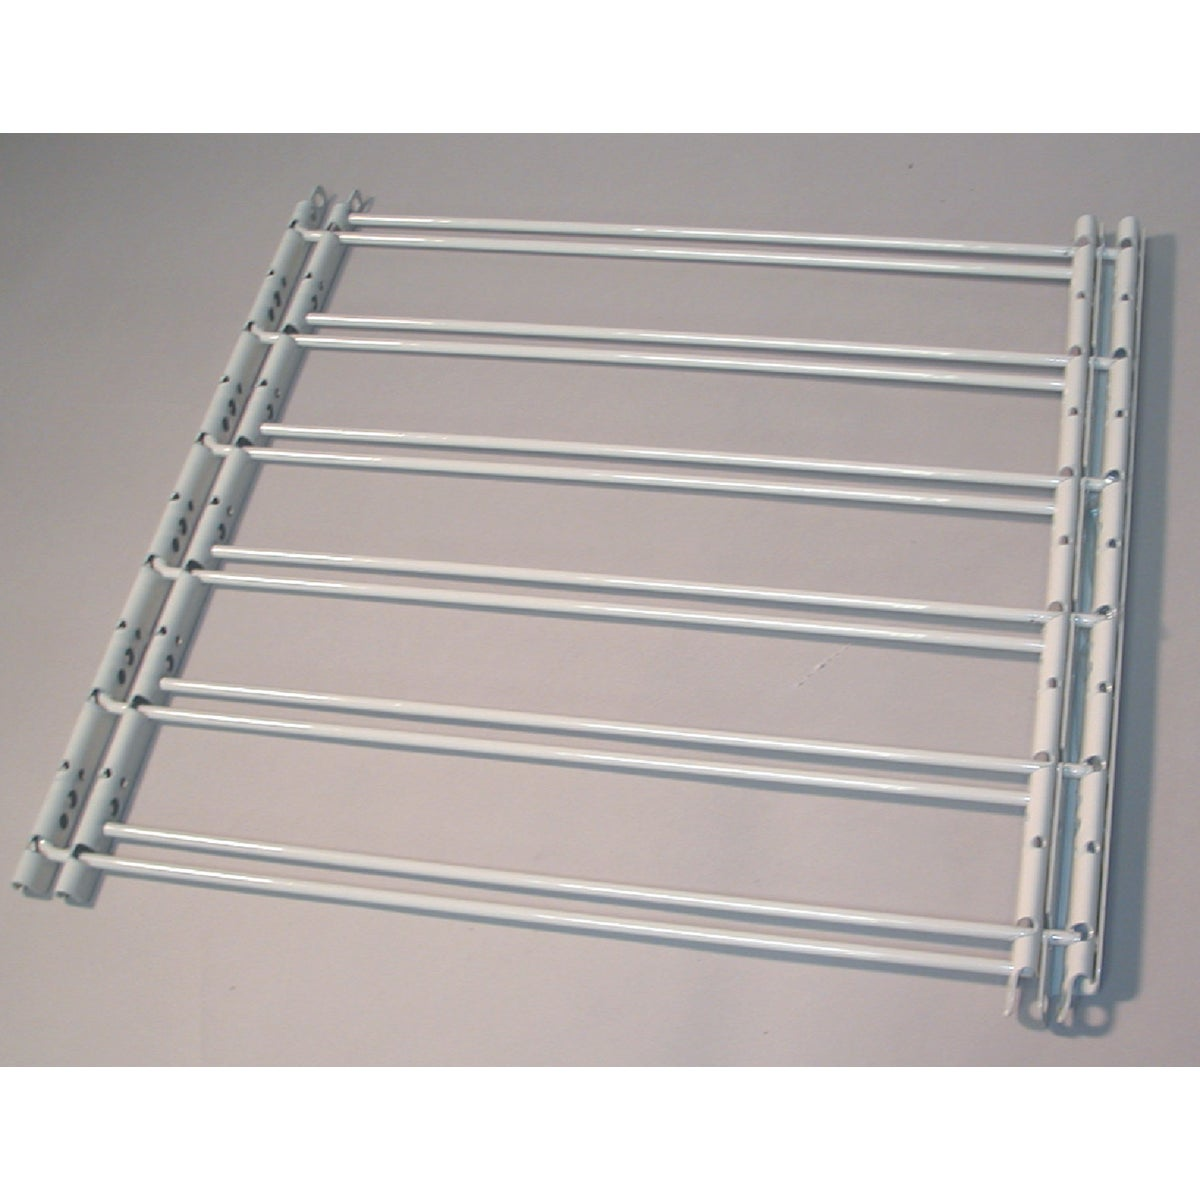 6-BAR WINDOW GUARD